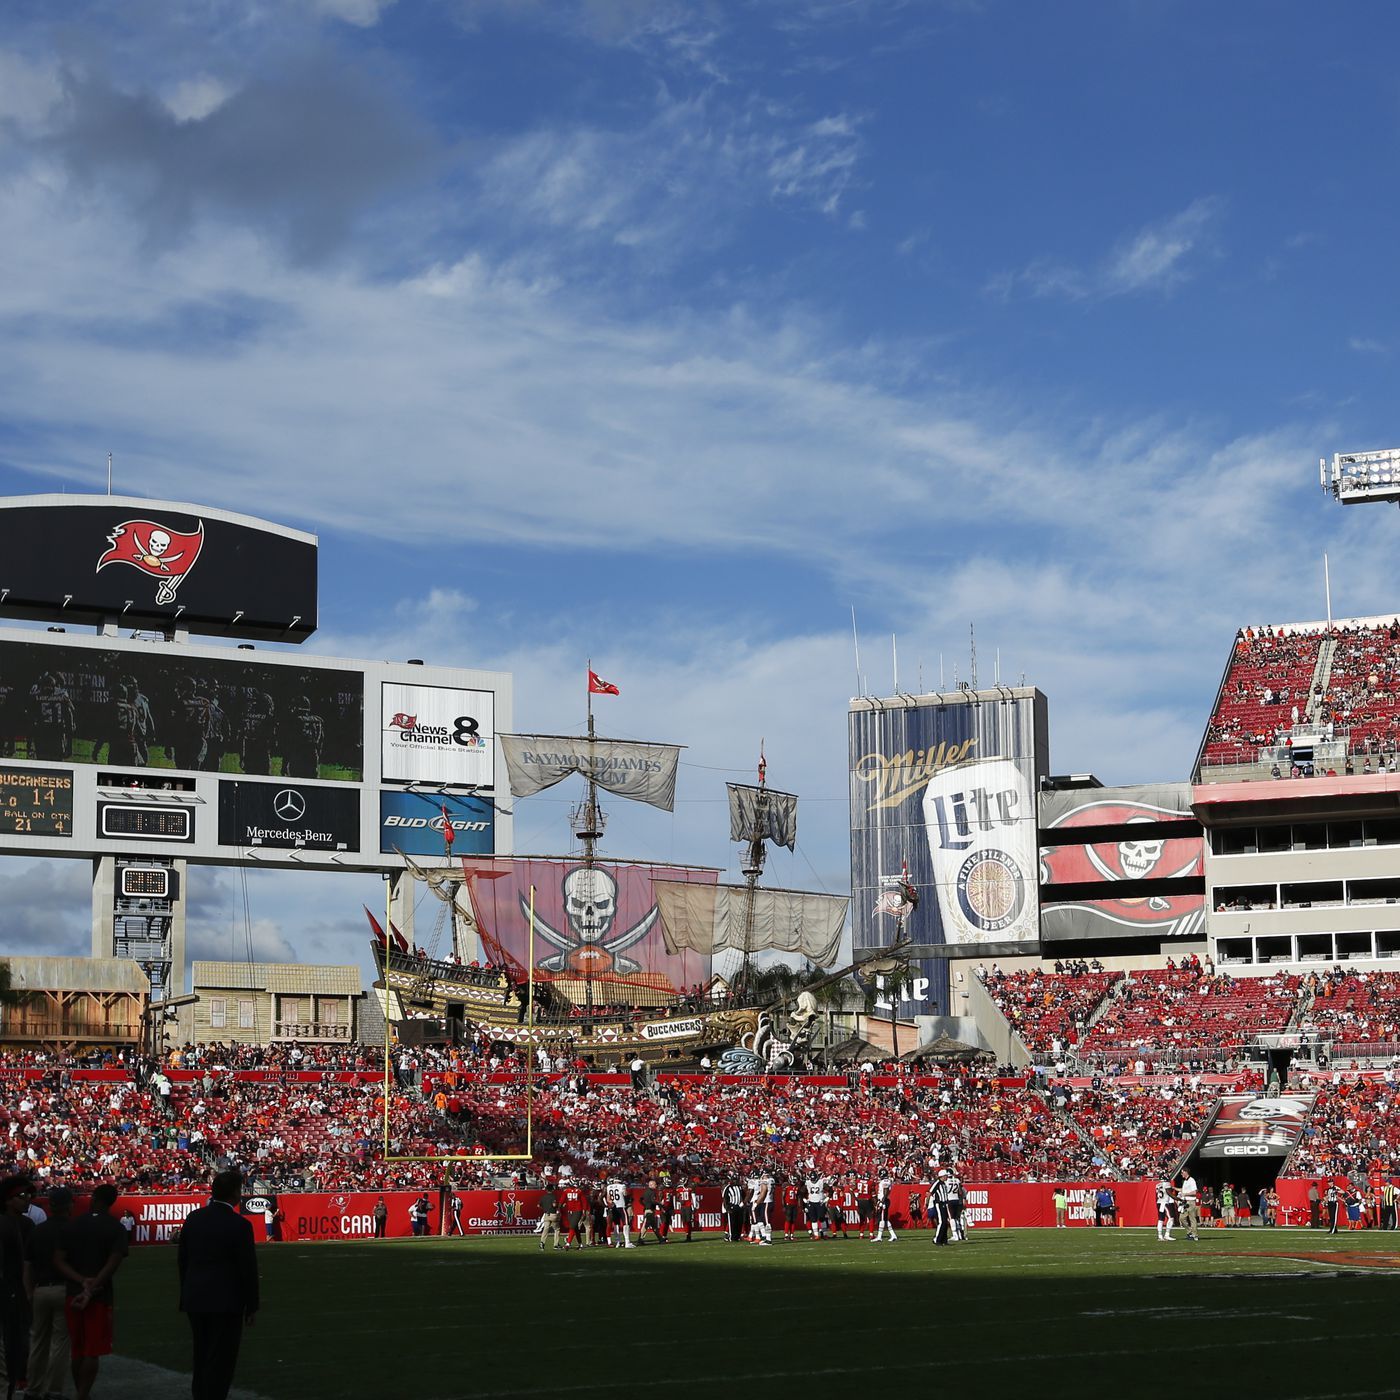 new bucs player murals go up at raymond james stadium bucs nation at raymond james stadium